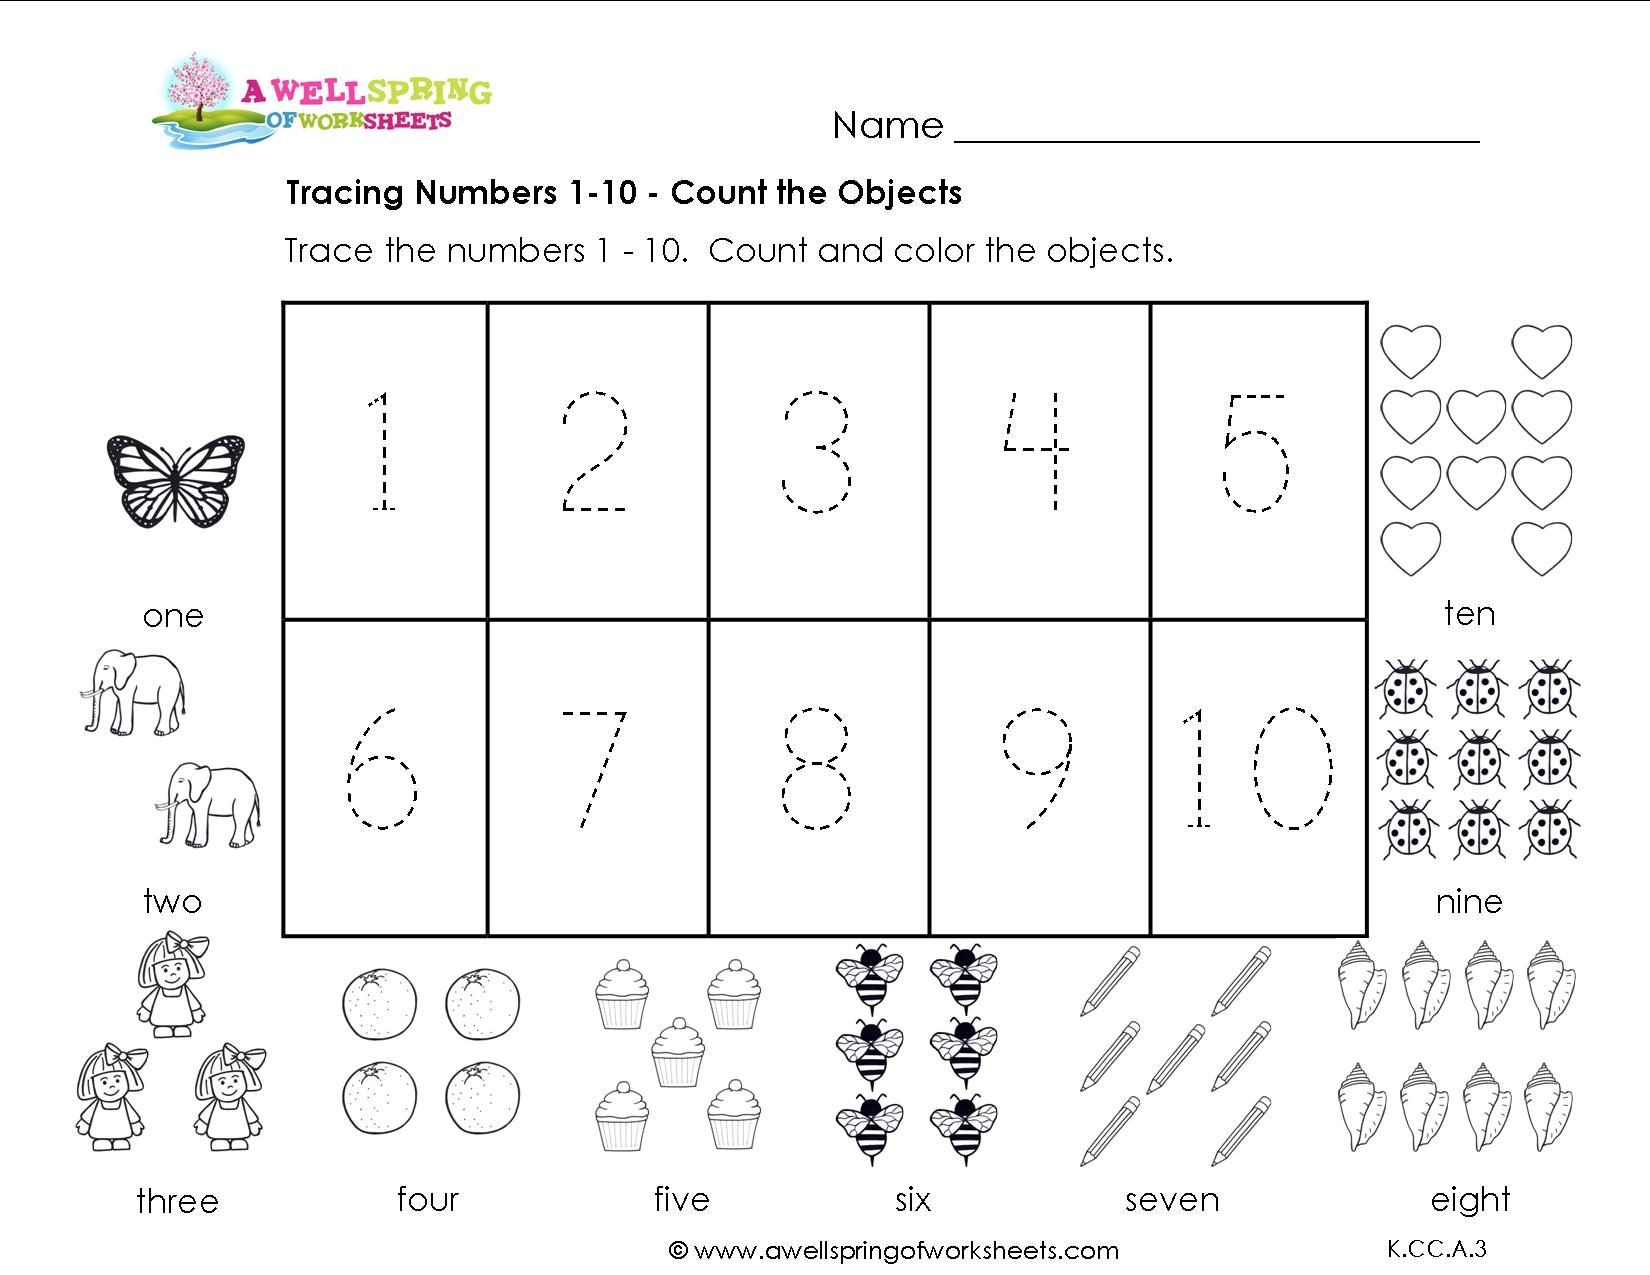 Free Worksheet Free Number Tracing Worksheets 1-10 free number tracing worksheets 1 10 photos beatlesblogcarnival numbers worksheet delibertad